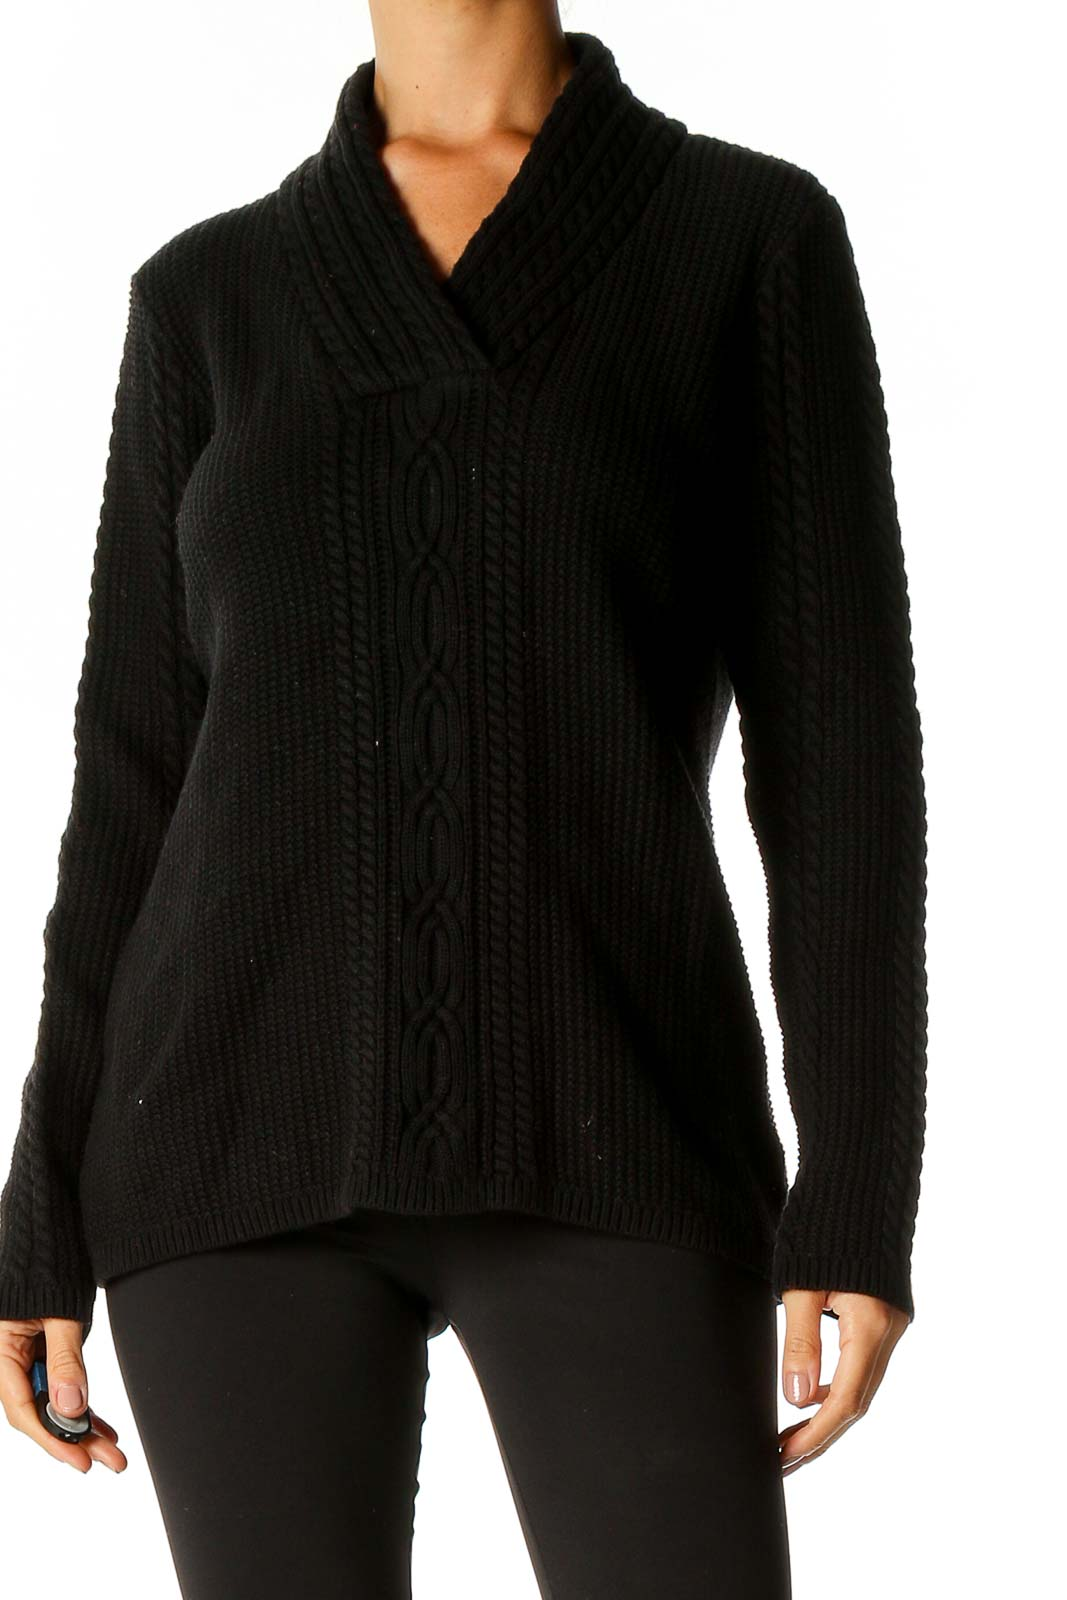 Black Textured Classic Sweater Front